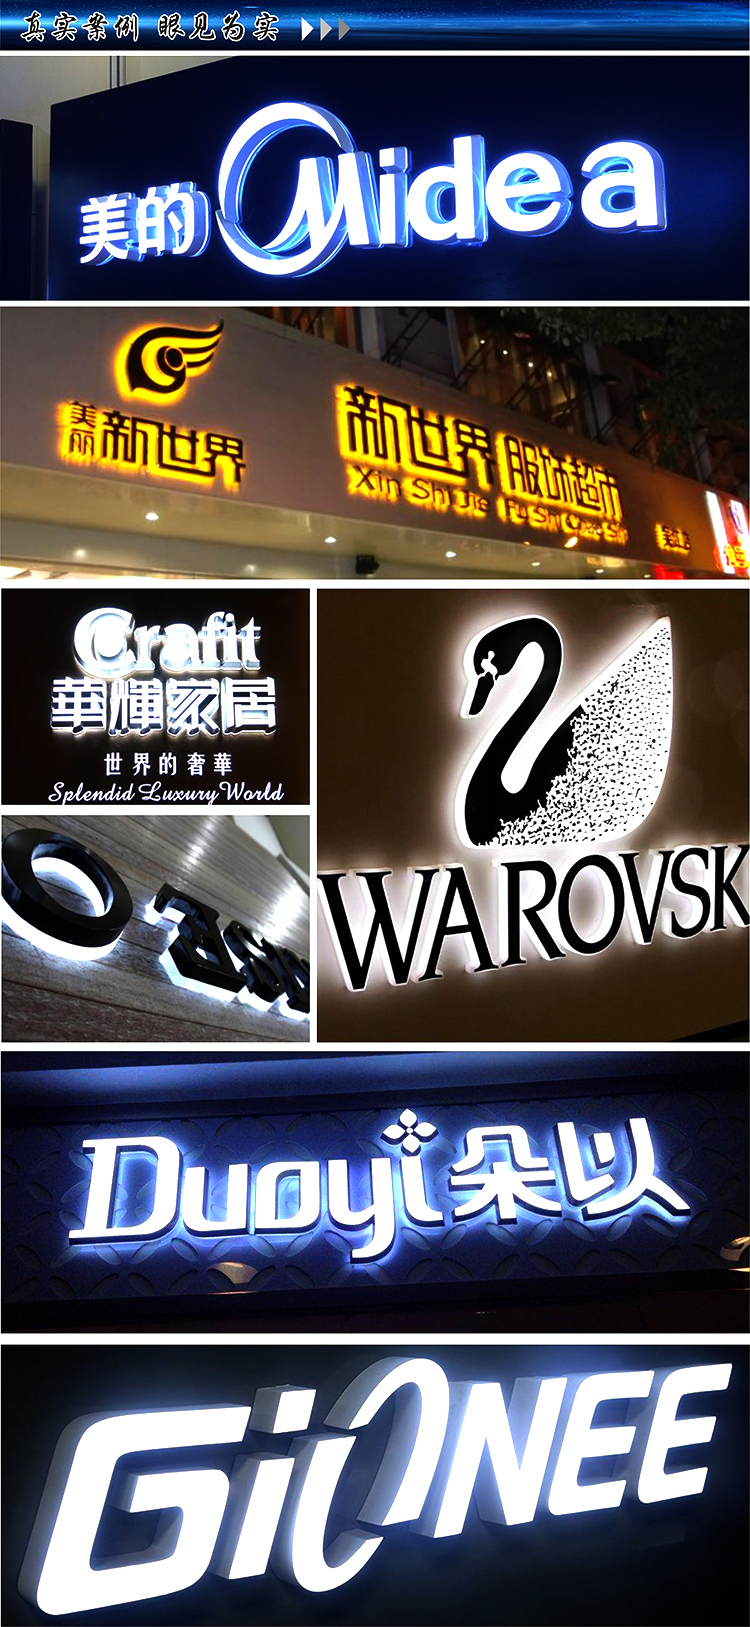 """<div style=""""text-align:left;""""> <span style=""""line-height:1.5;"""">发光字系列</span> </div>"""